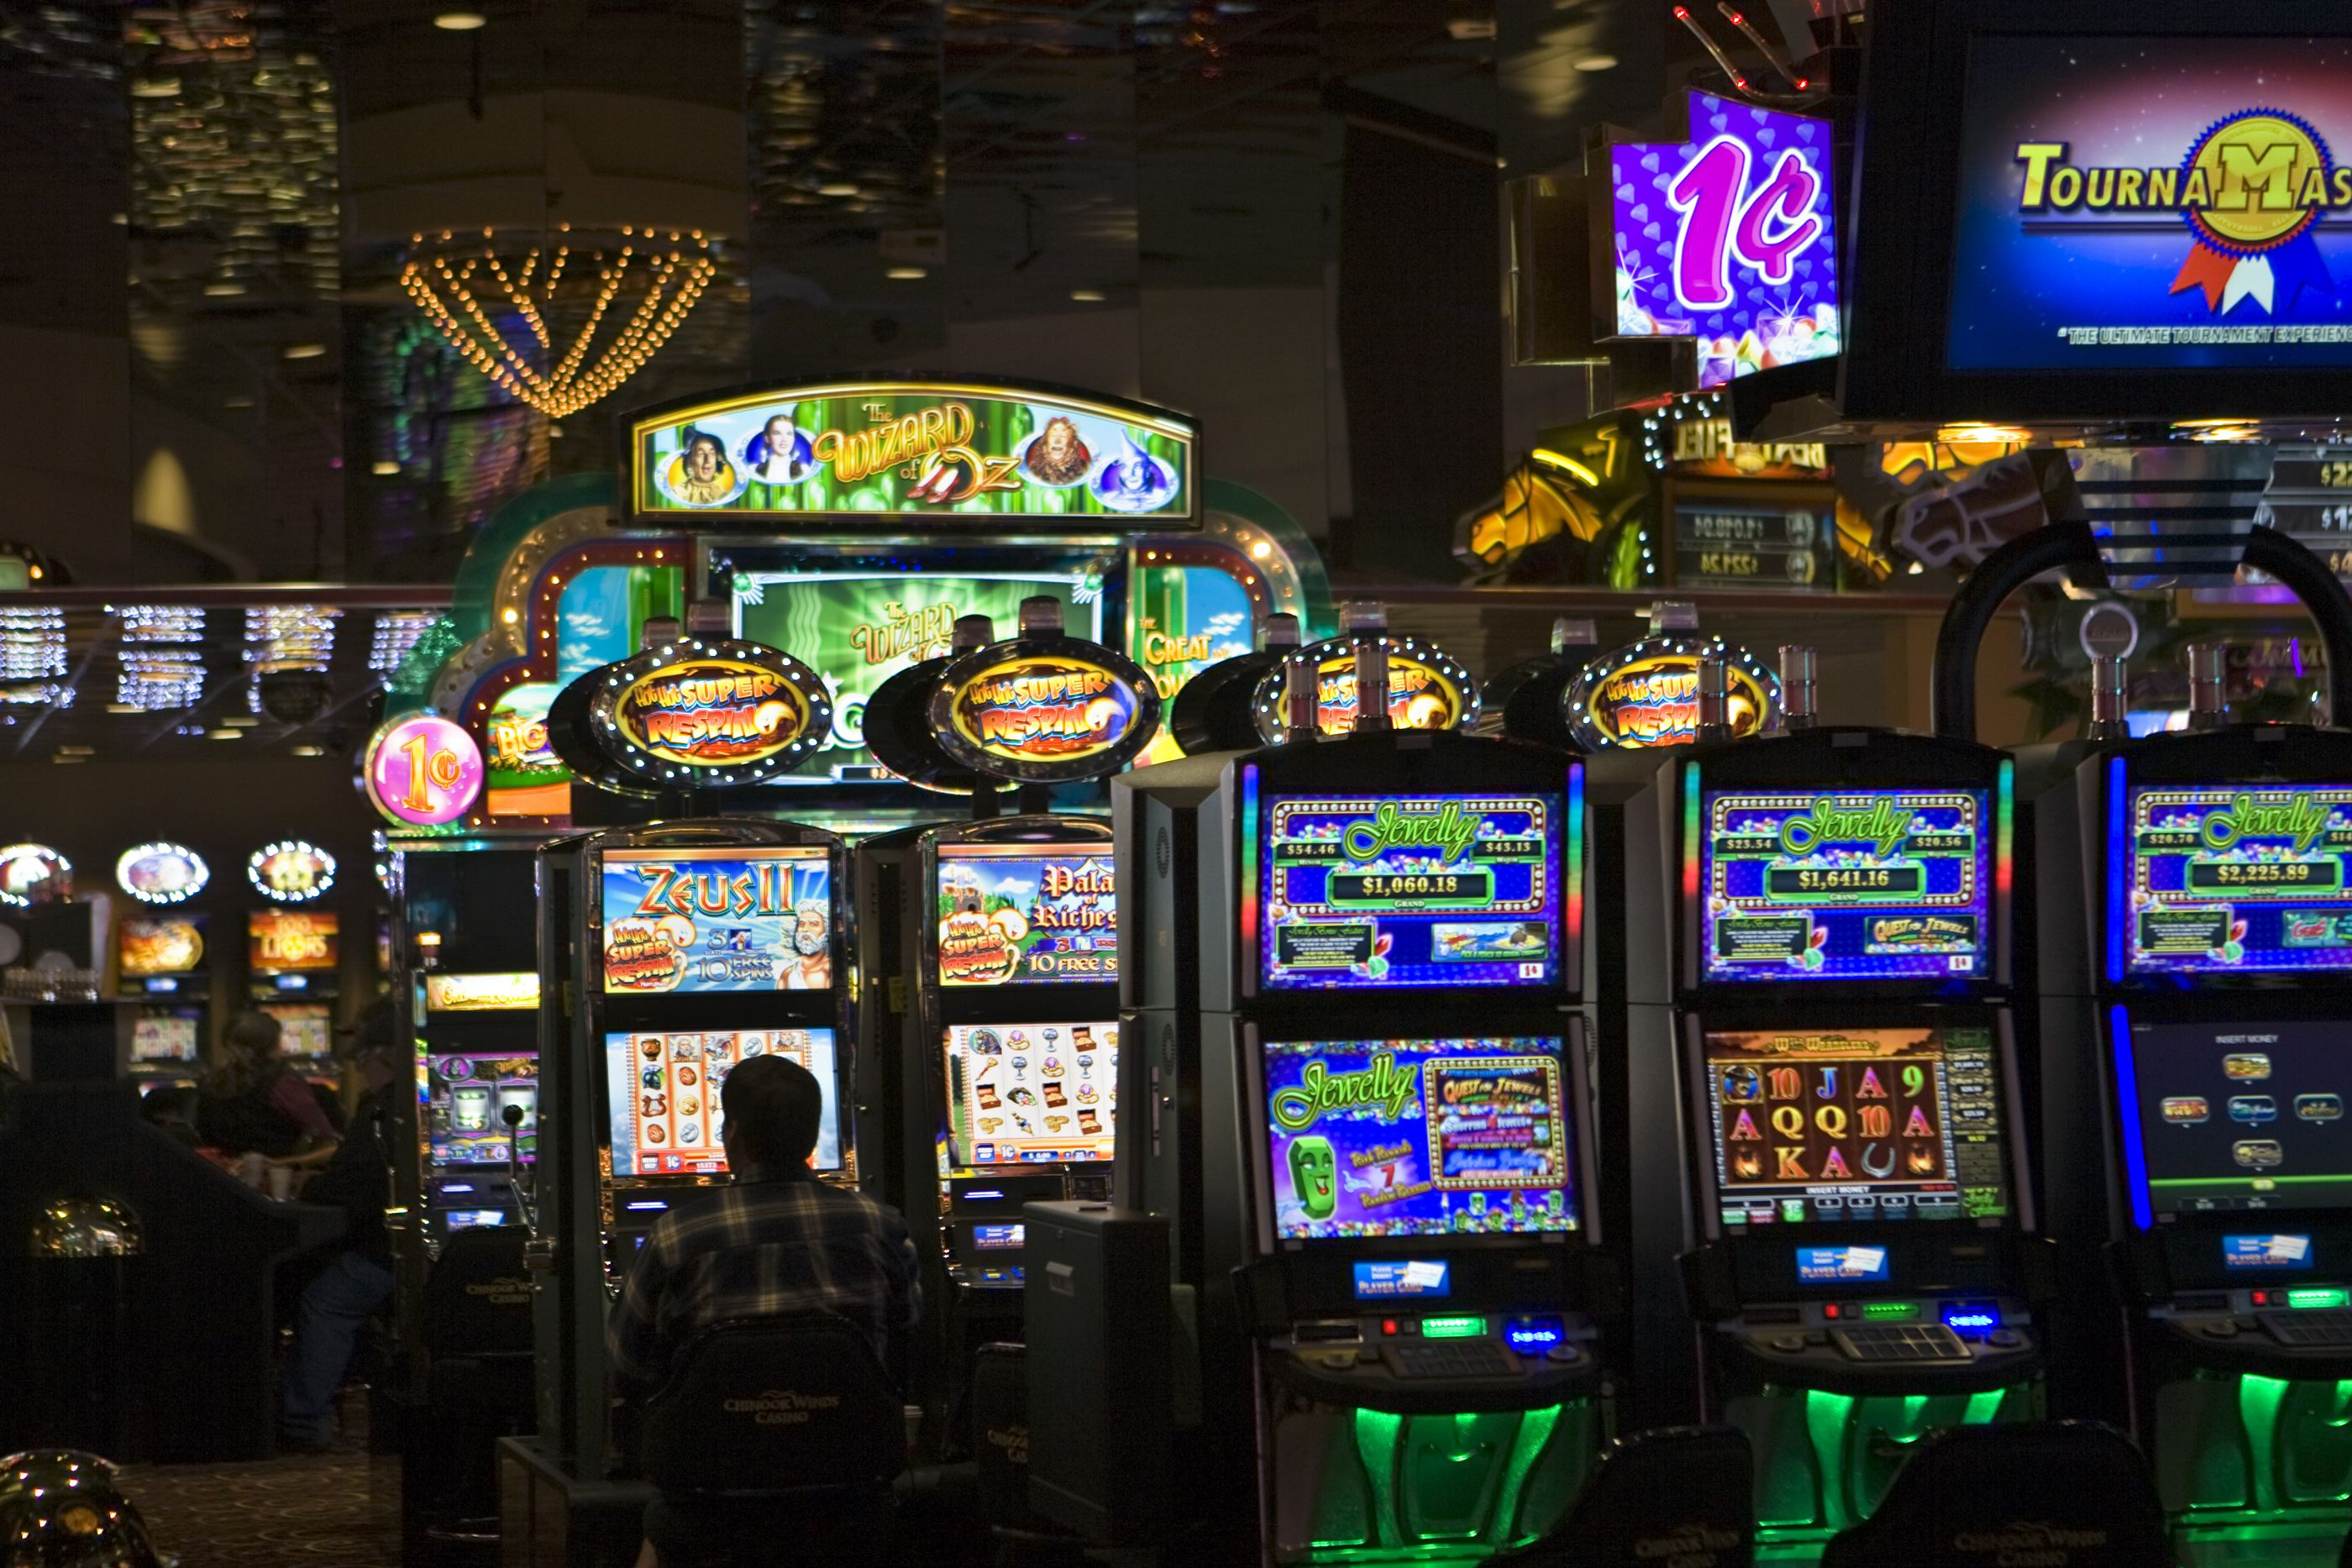 Arizona gaming license requirements